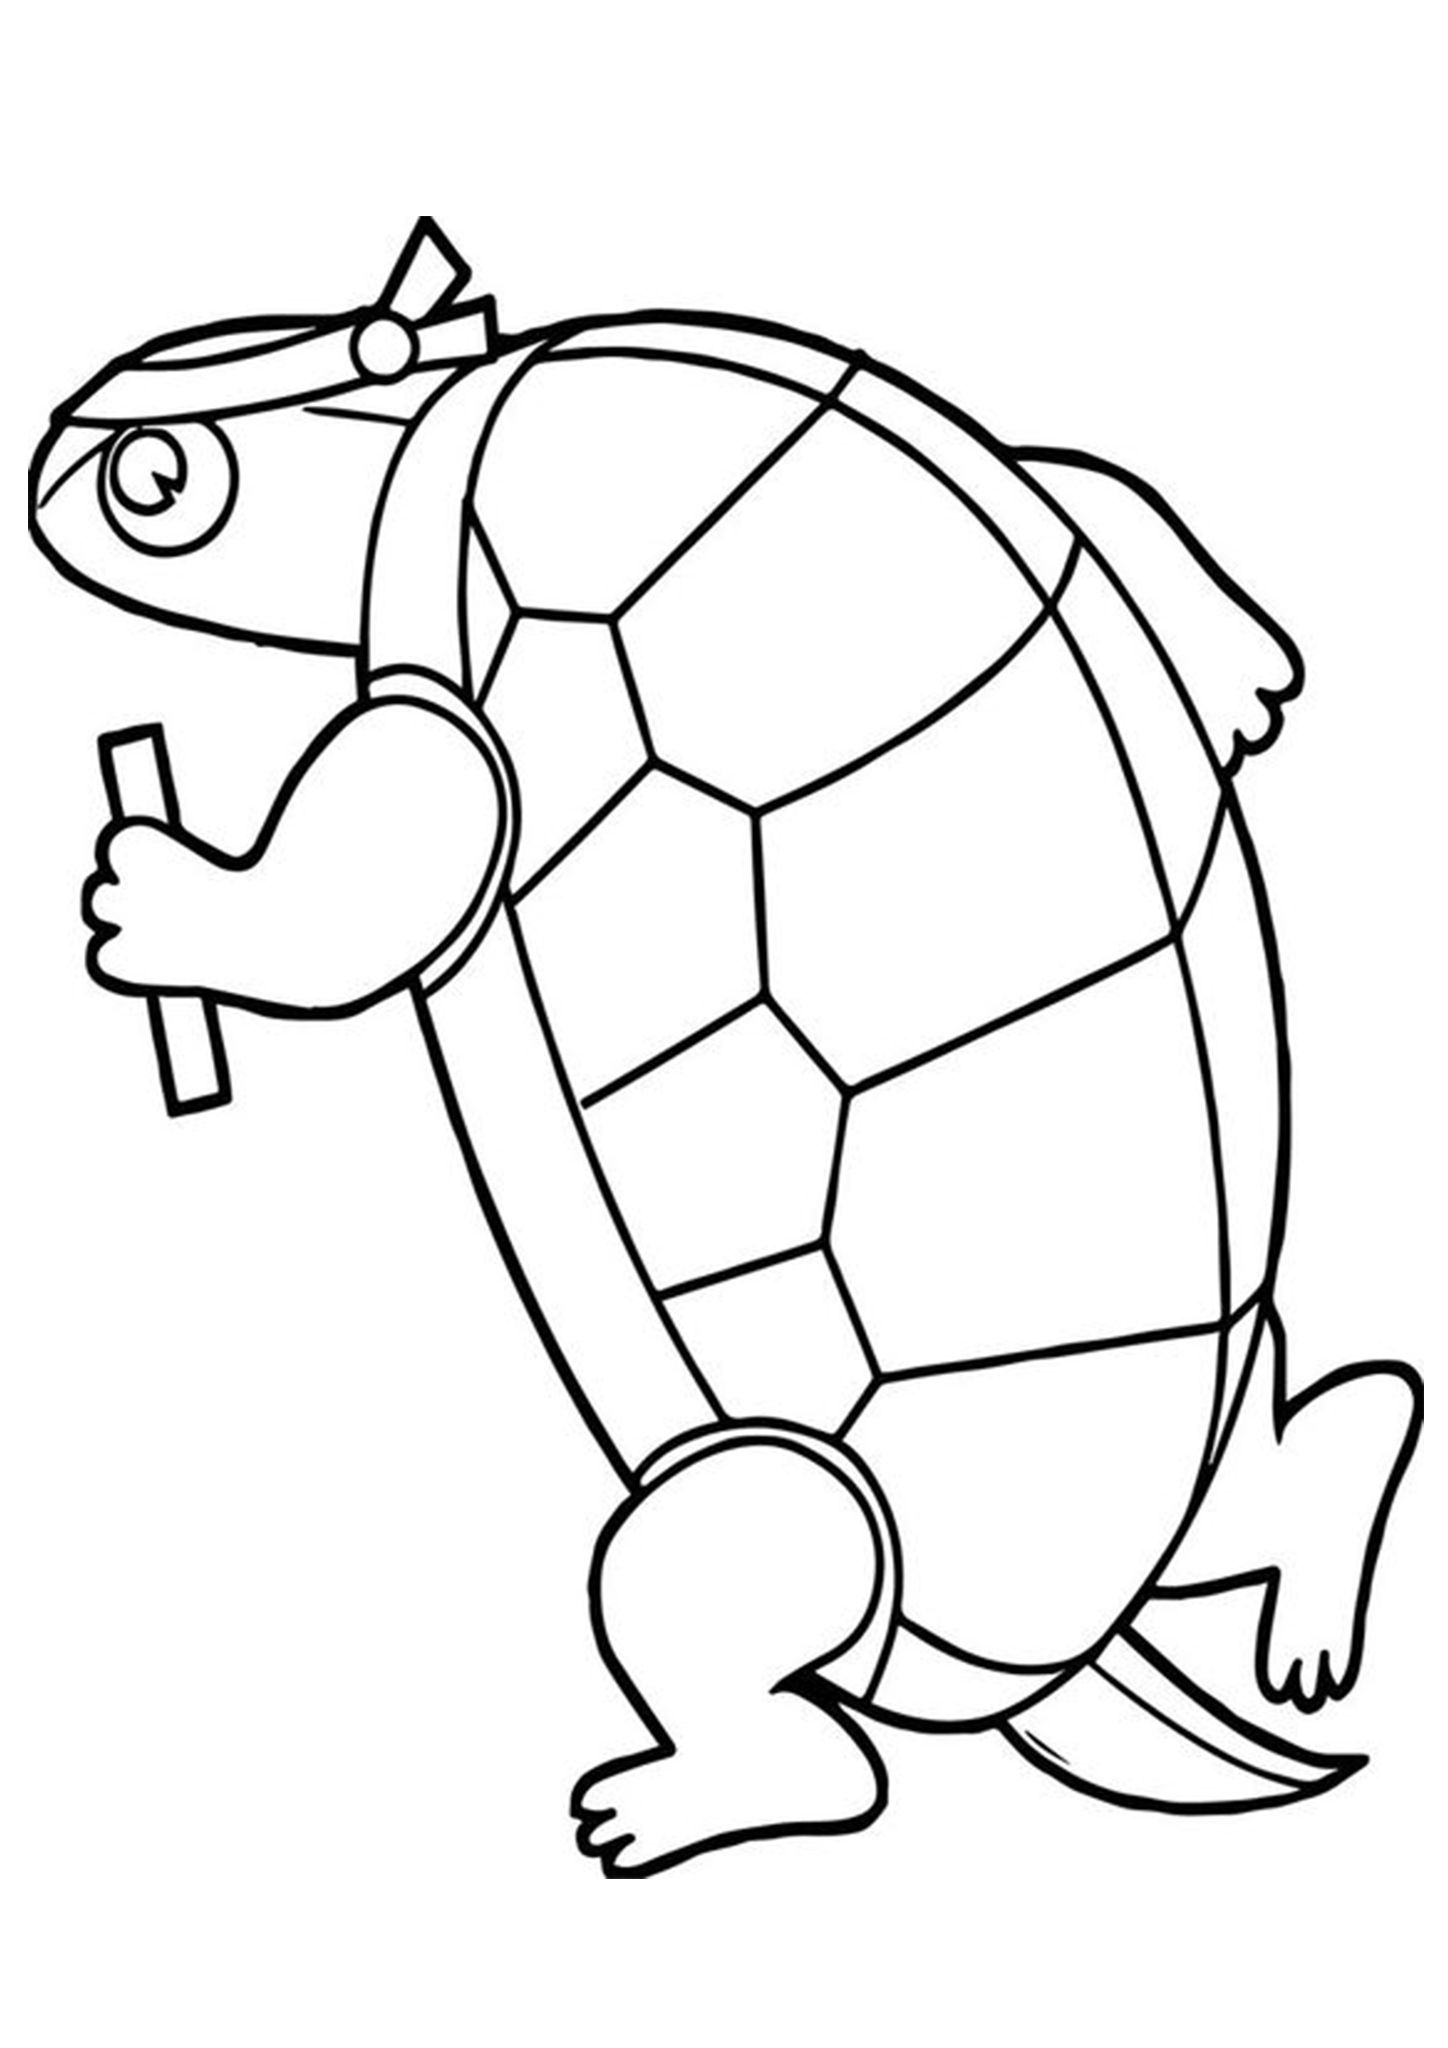 turtle coloring pictures to print turtles coloring pages download and print turtles print to coloring pictures turtle